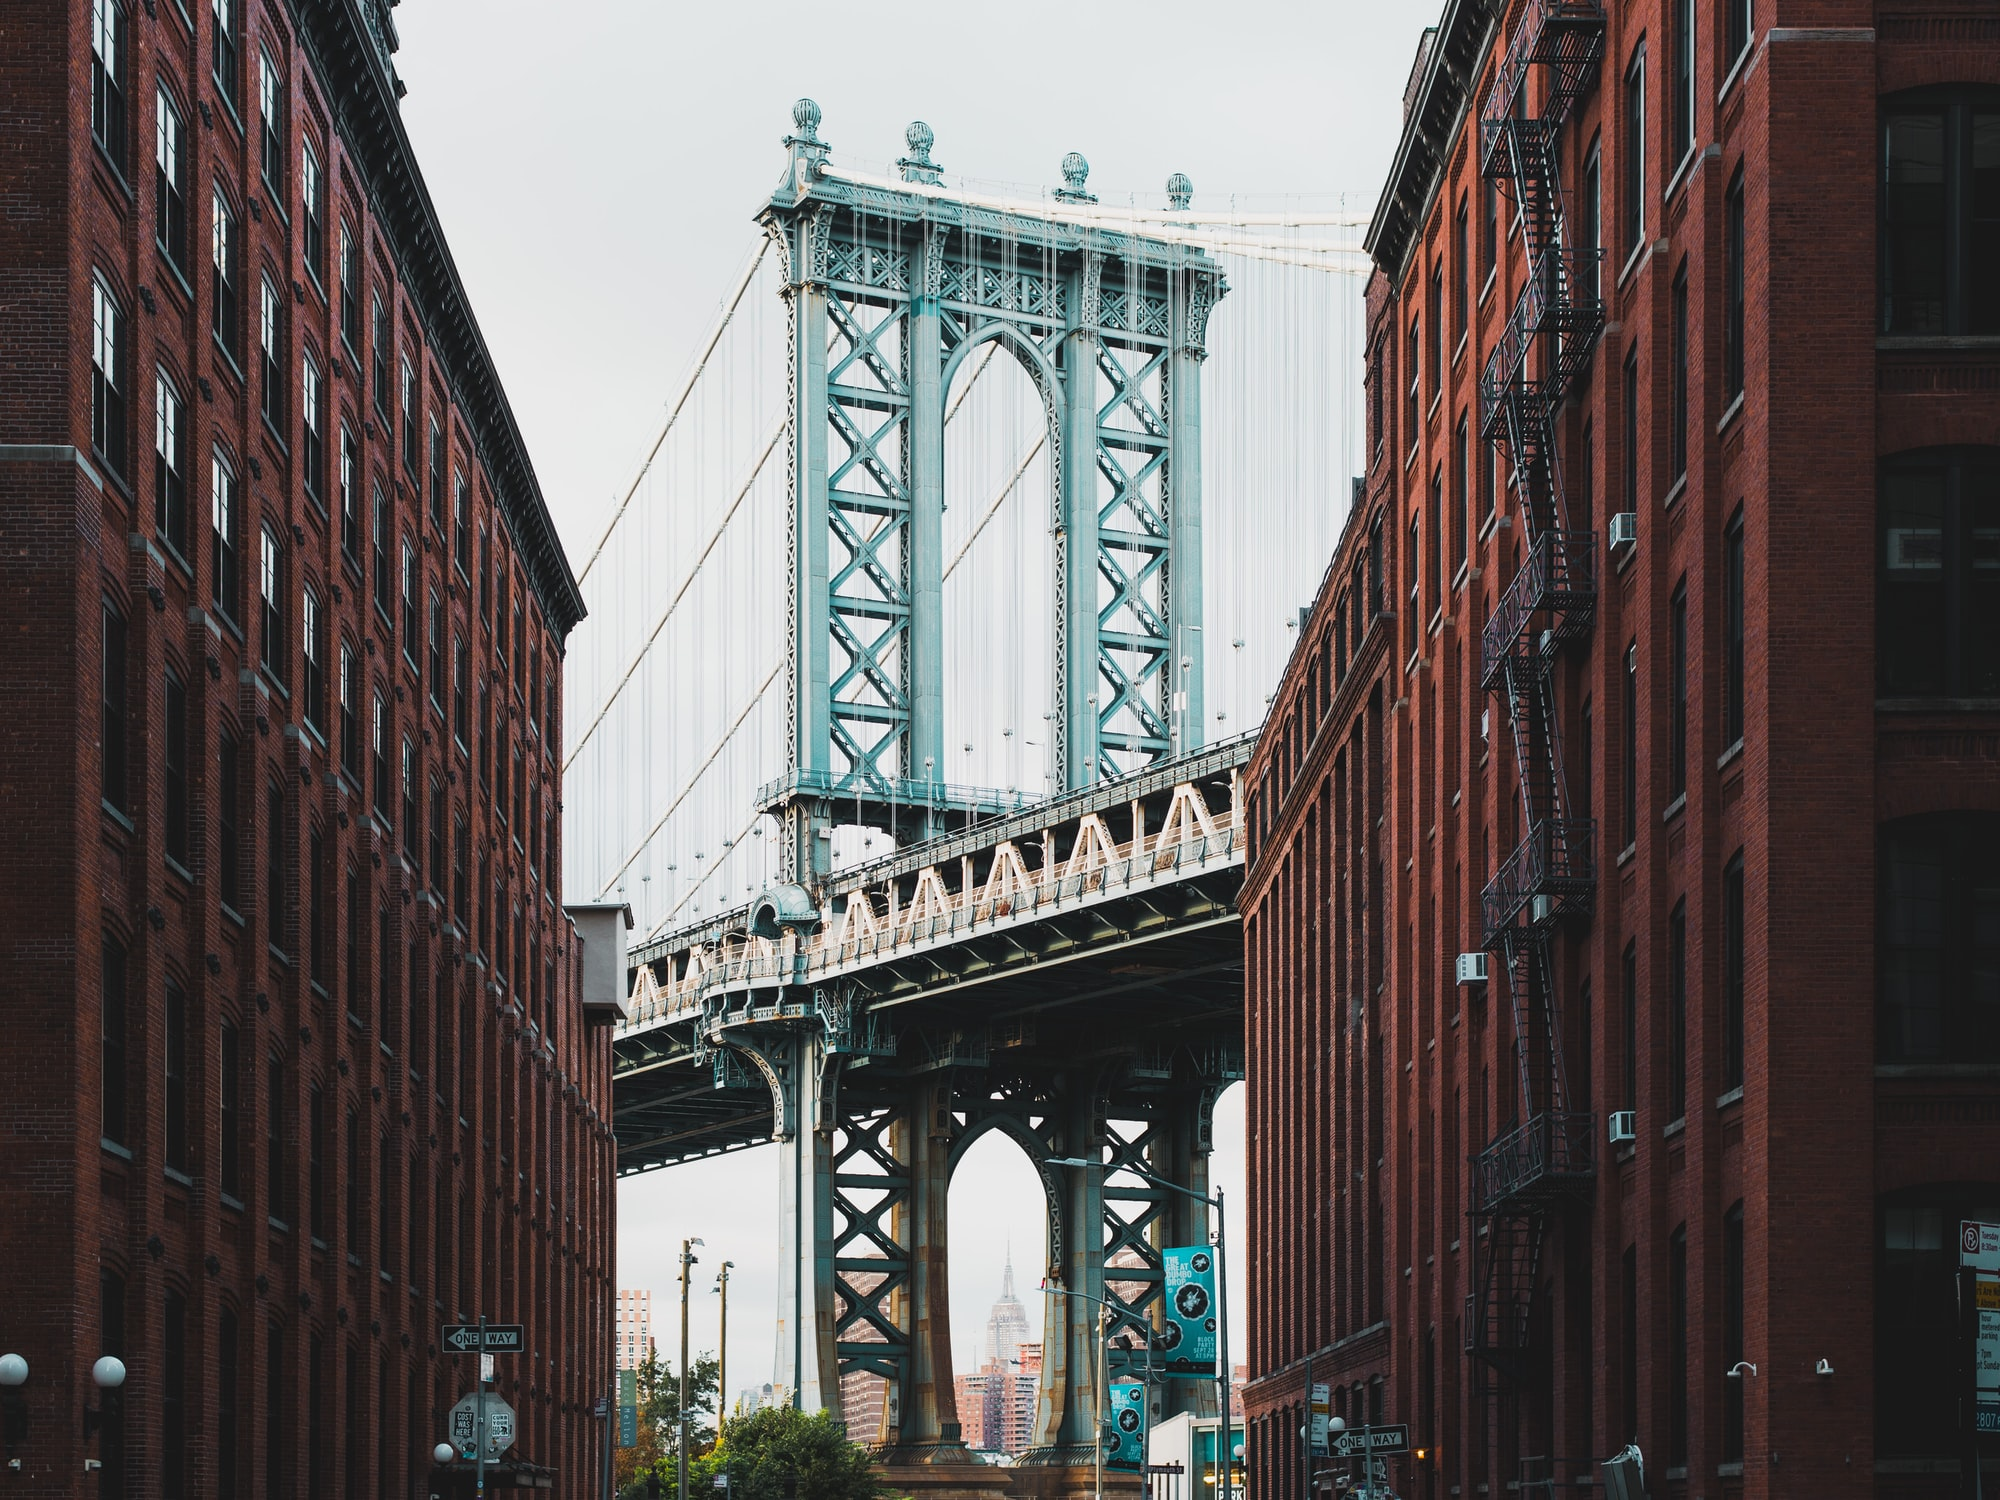 A photo of the Manhattan Bridge taken at dusk in NYC from Brooklyn.